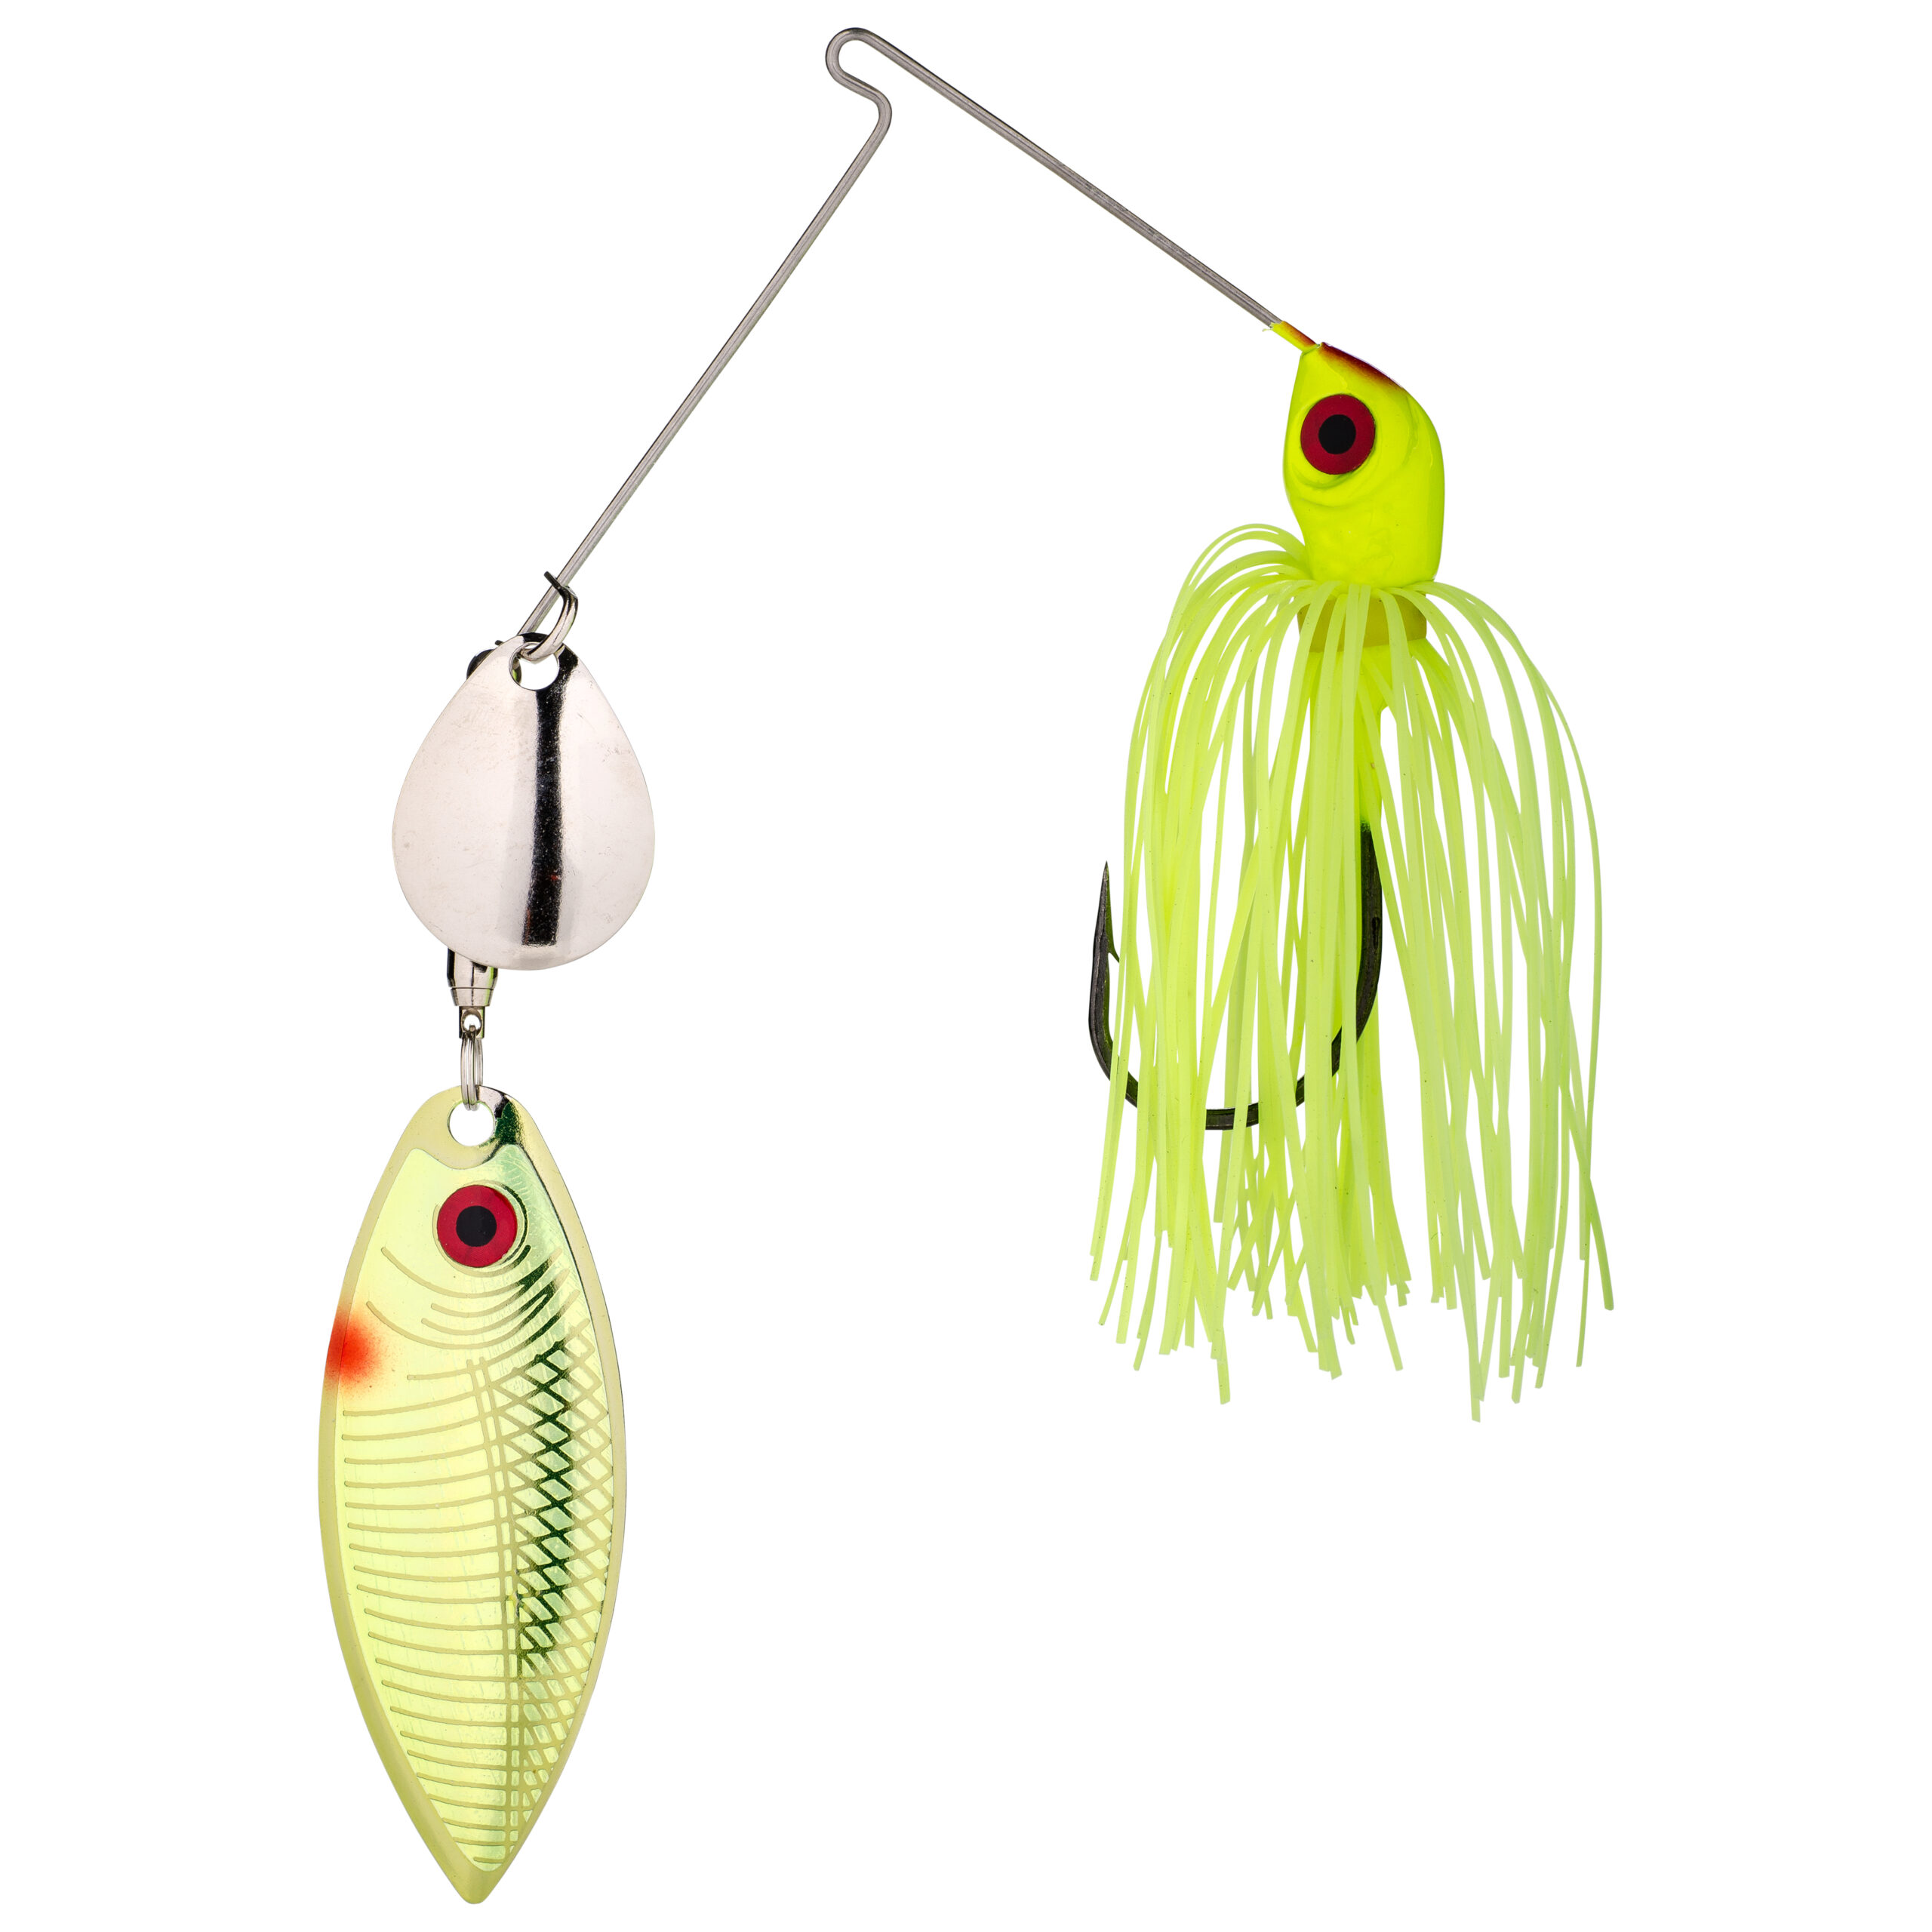 Strike King Lures – Spinnerbaits – Colorado Willow – Red Eyed Special - 3/8oz - REYE38CW-1 - Chartreuse